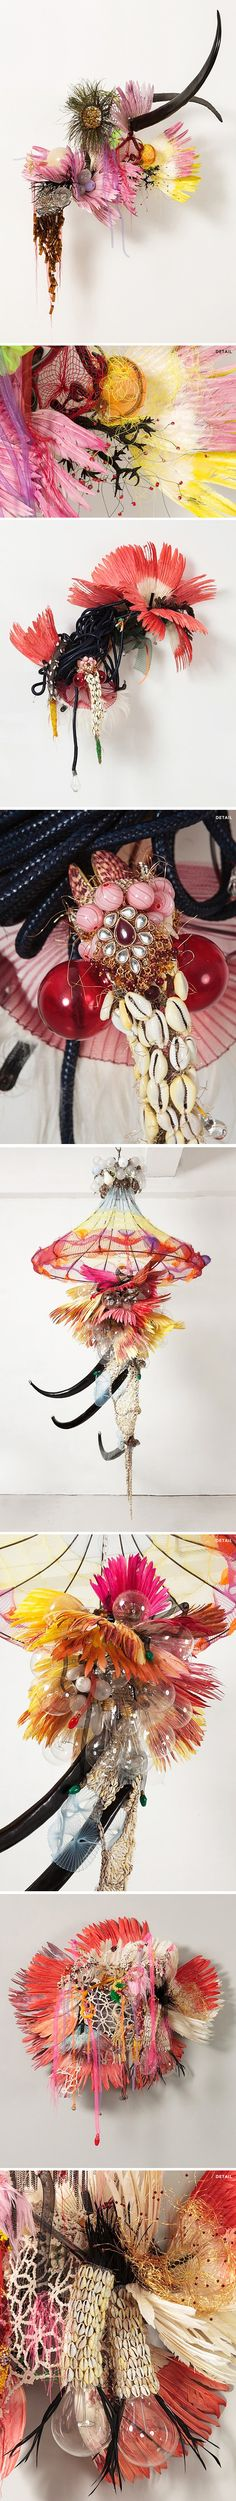 sculptures (made with found things!) by rina banerjee